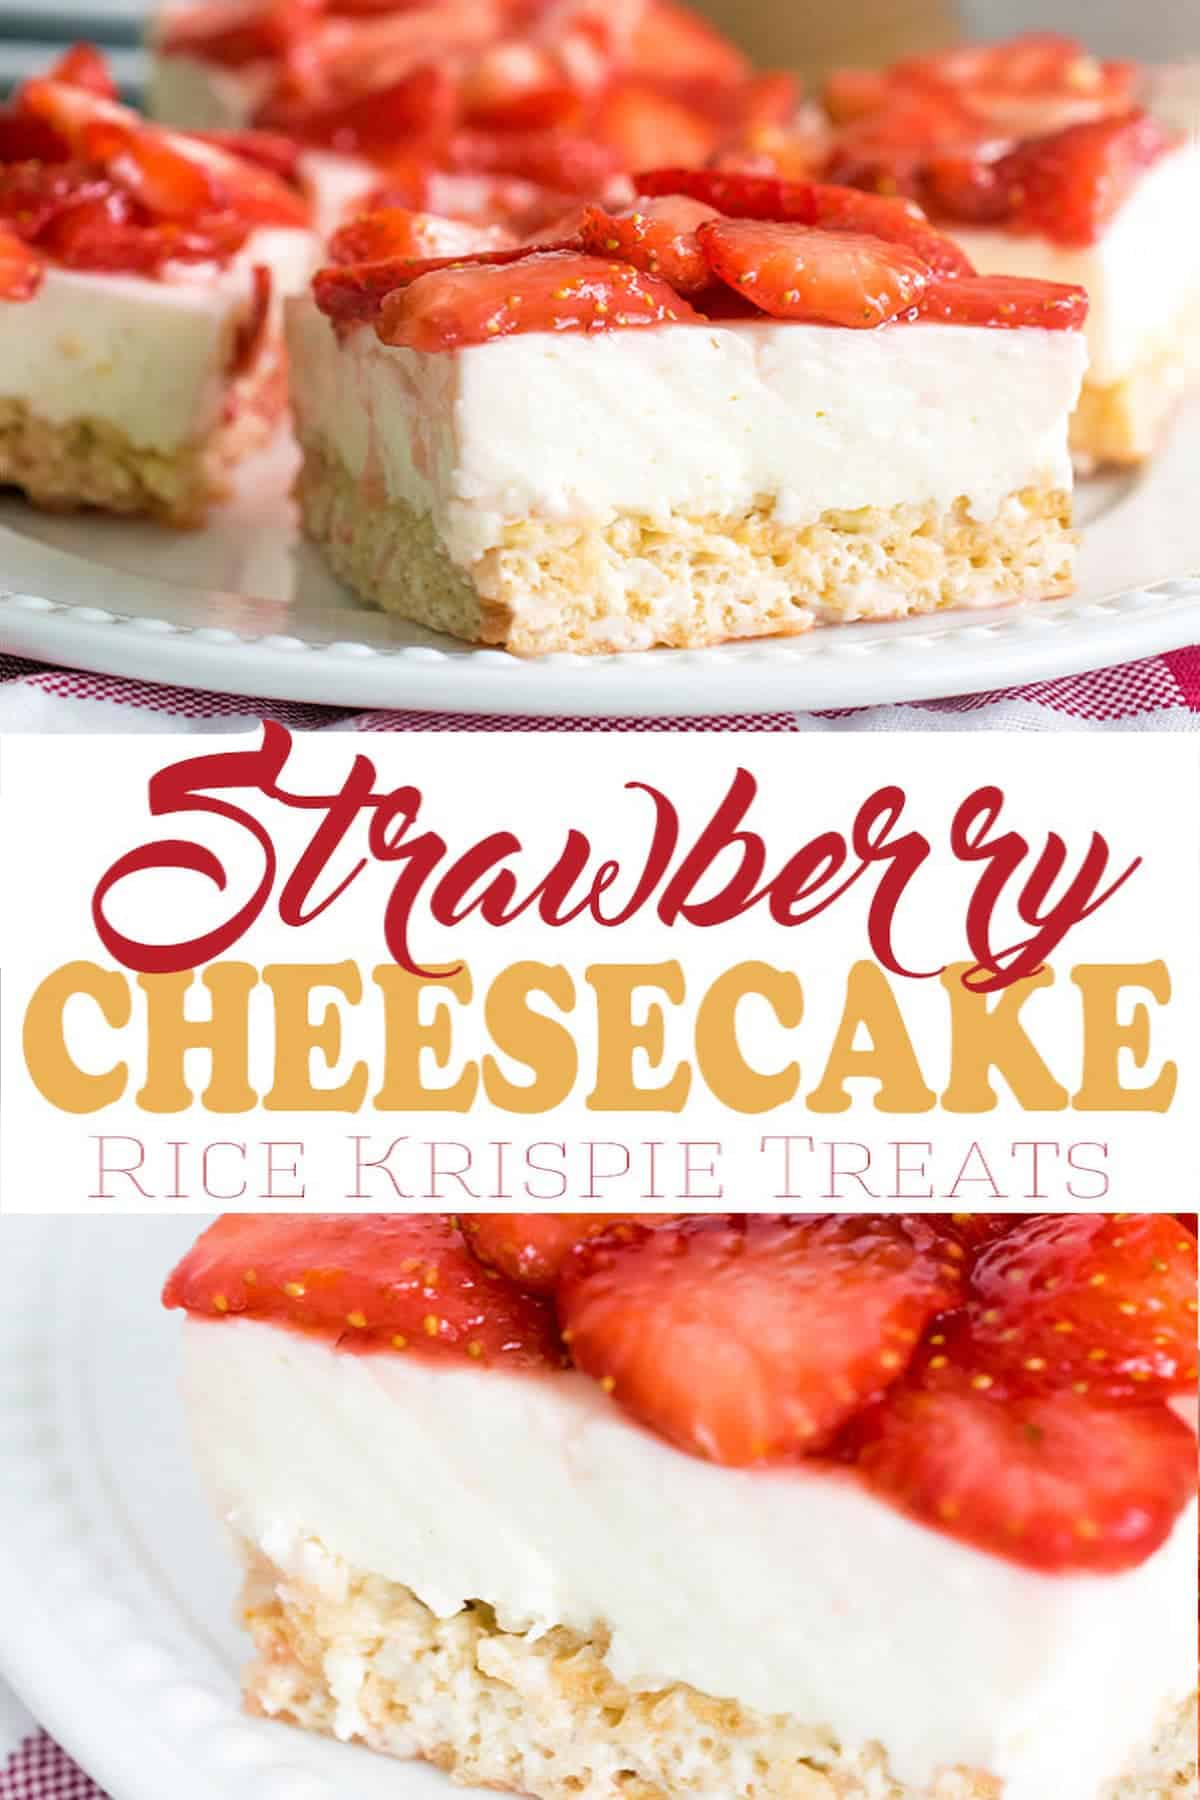 Strawberry cheesecake Rice Krispie treat squares topped with a layer of creamy cheesecake and sliced glazed strawberries